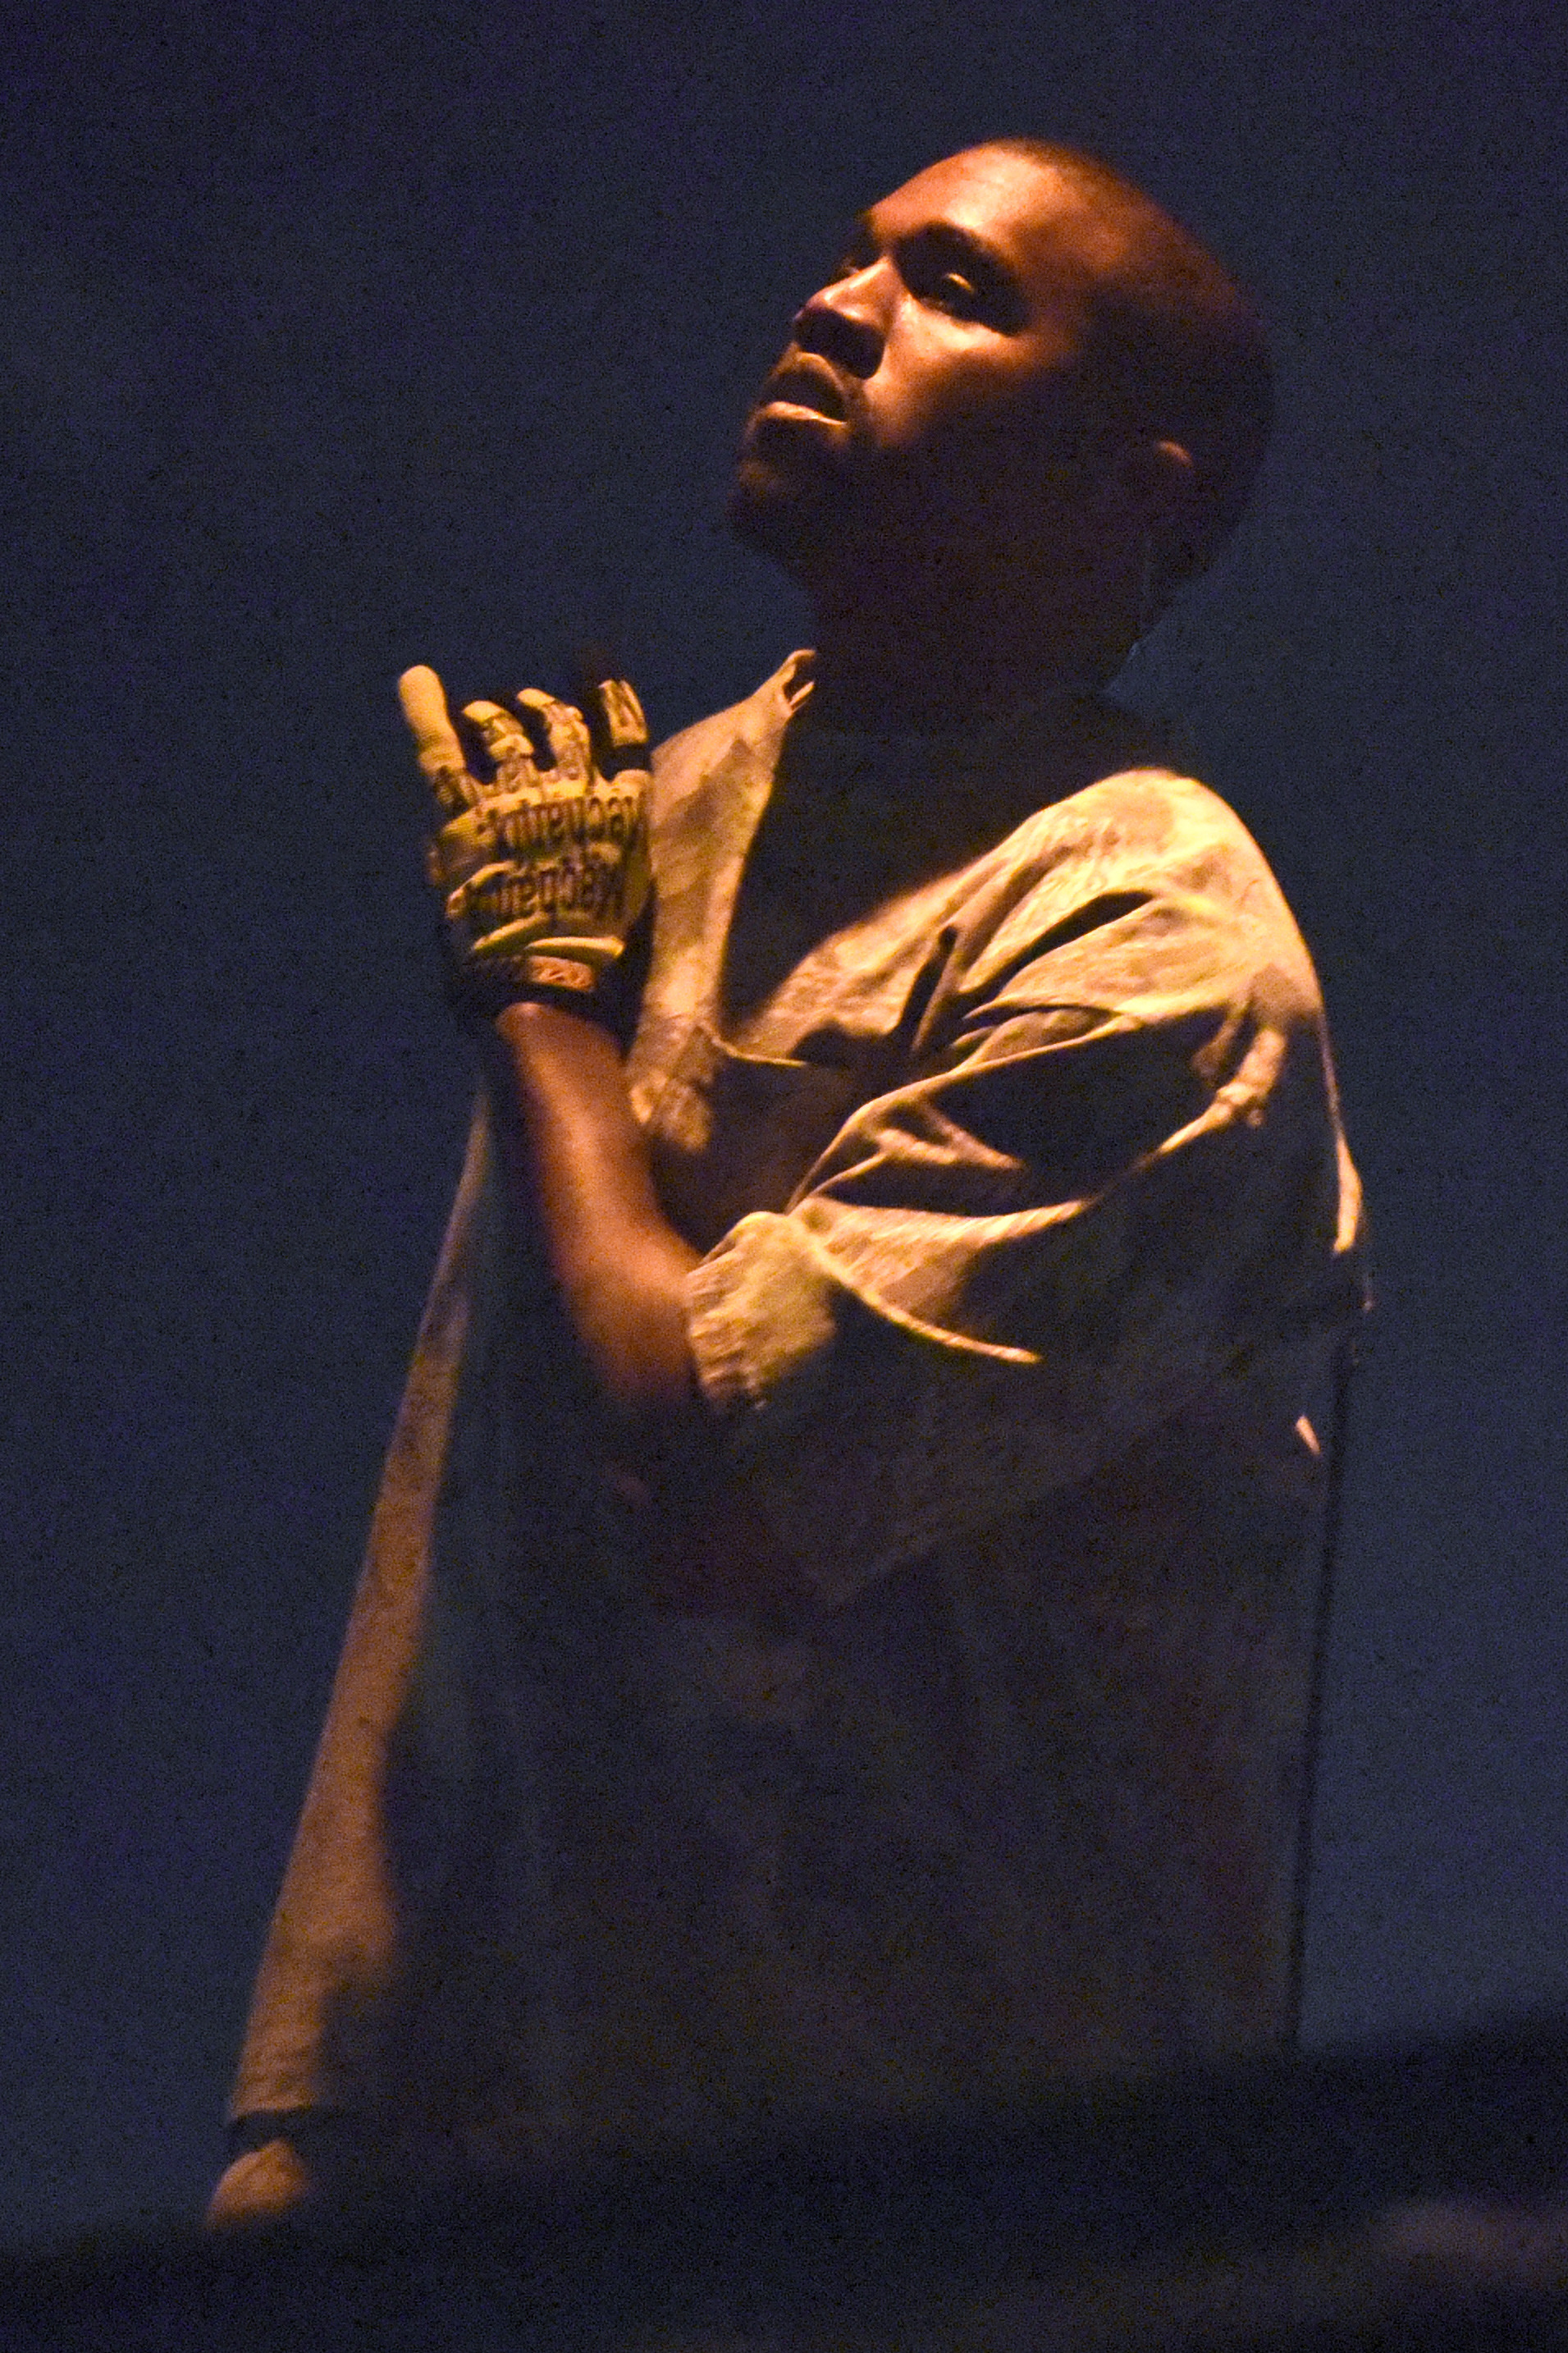 Kanye West in Chicago